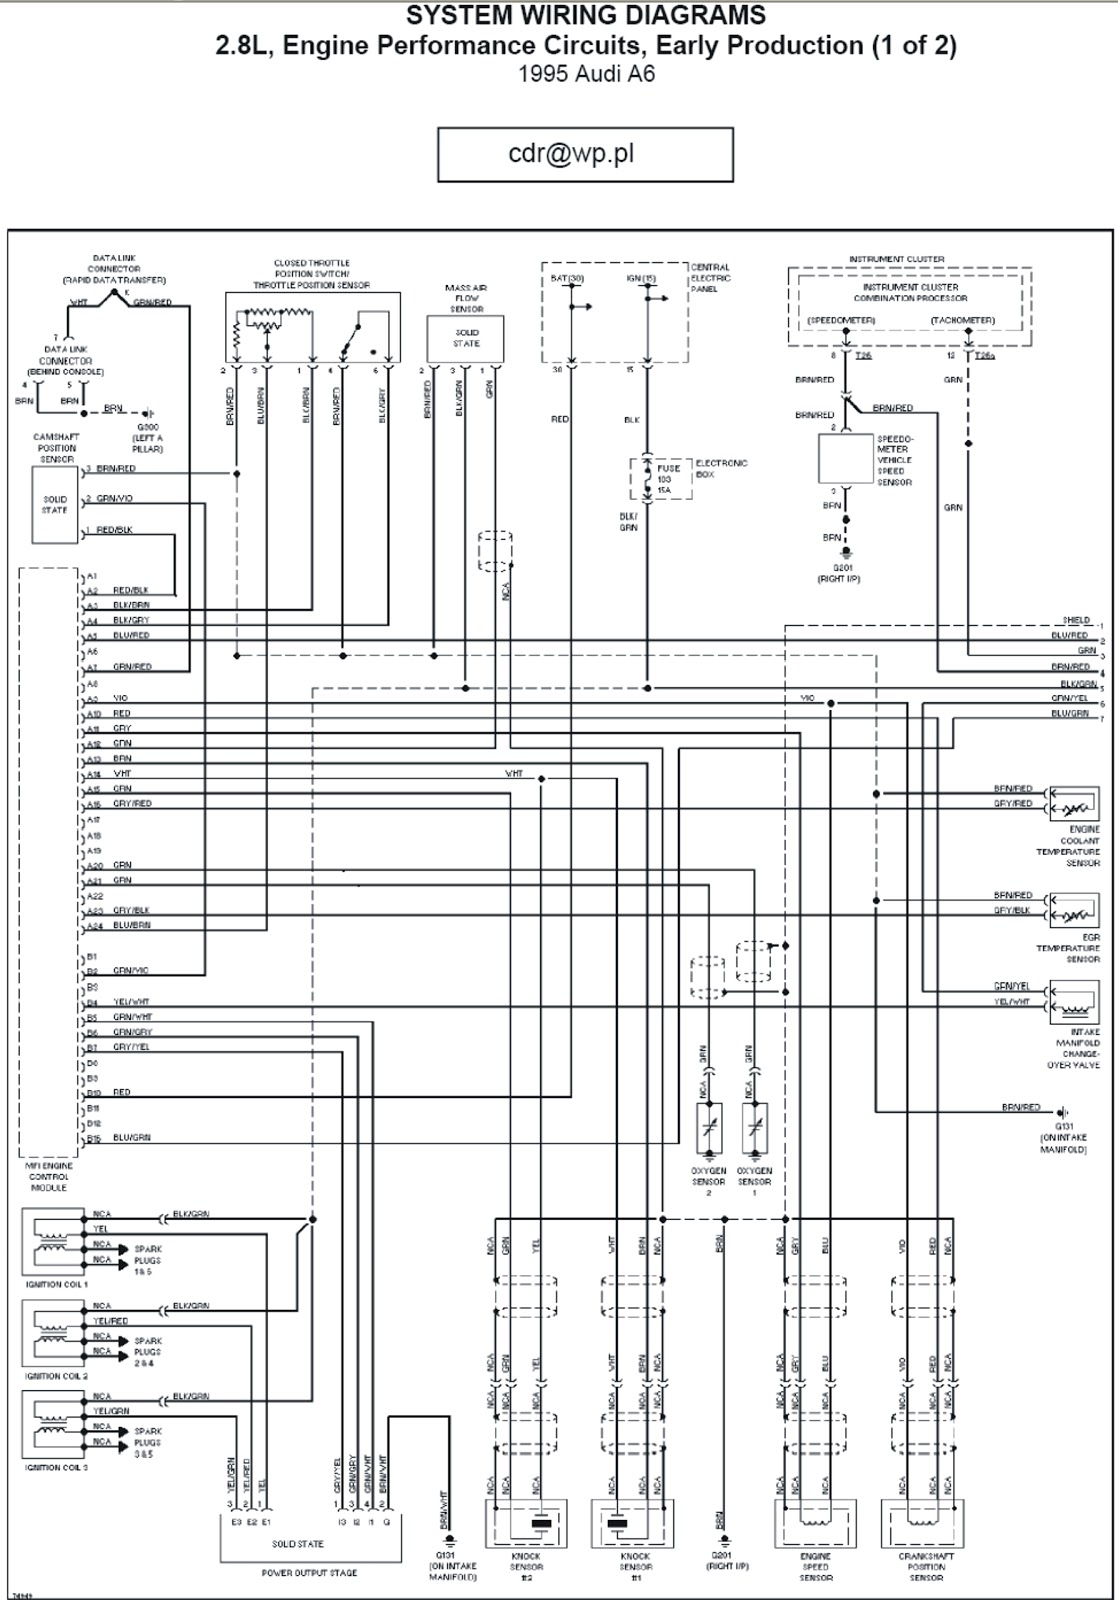 Audi B5 S4 Wiring Diagrams | Wiring Diagram  Audi S Wiring Diagram on 01 mitsubishi eclipse wiring diagram, 01 chevy malibu wiring diagram, 01 dodge dakota wiring diagram,